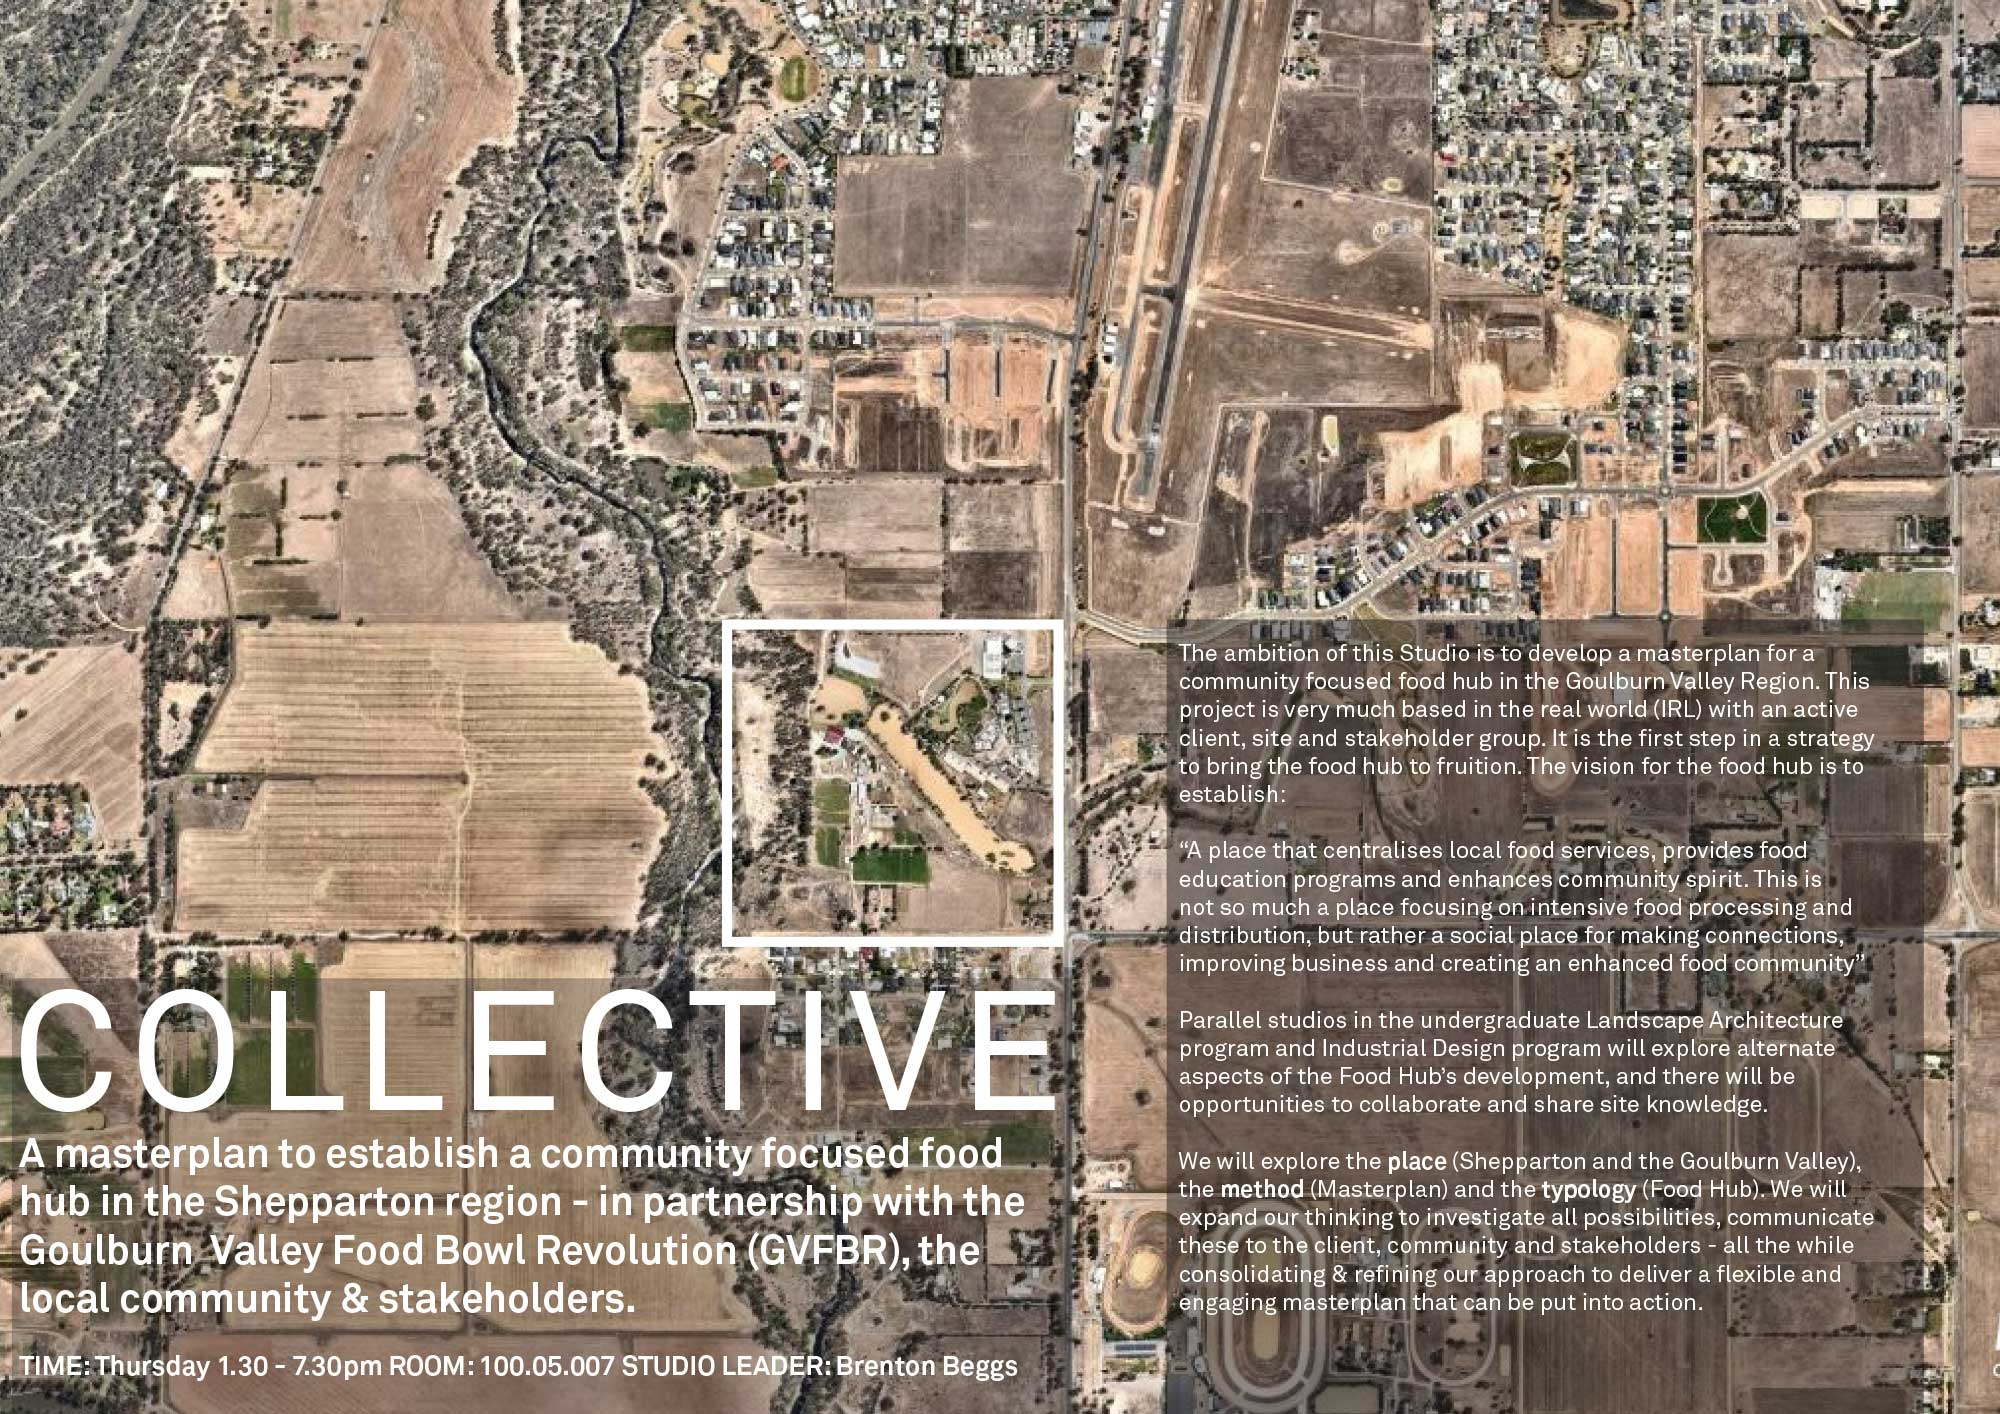 Collective_Poster_Updated.jpg